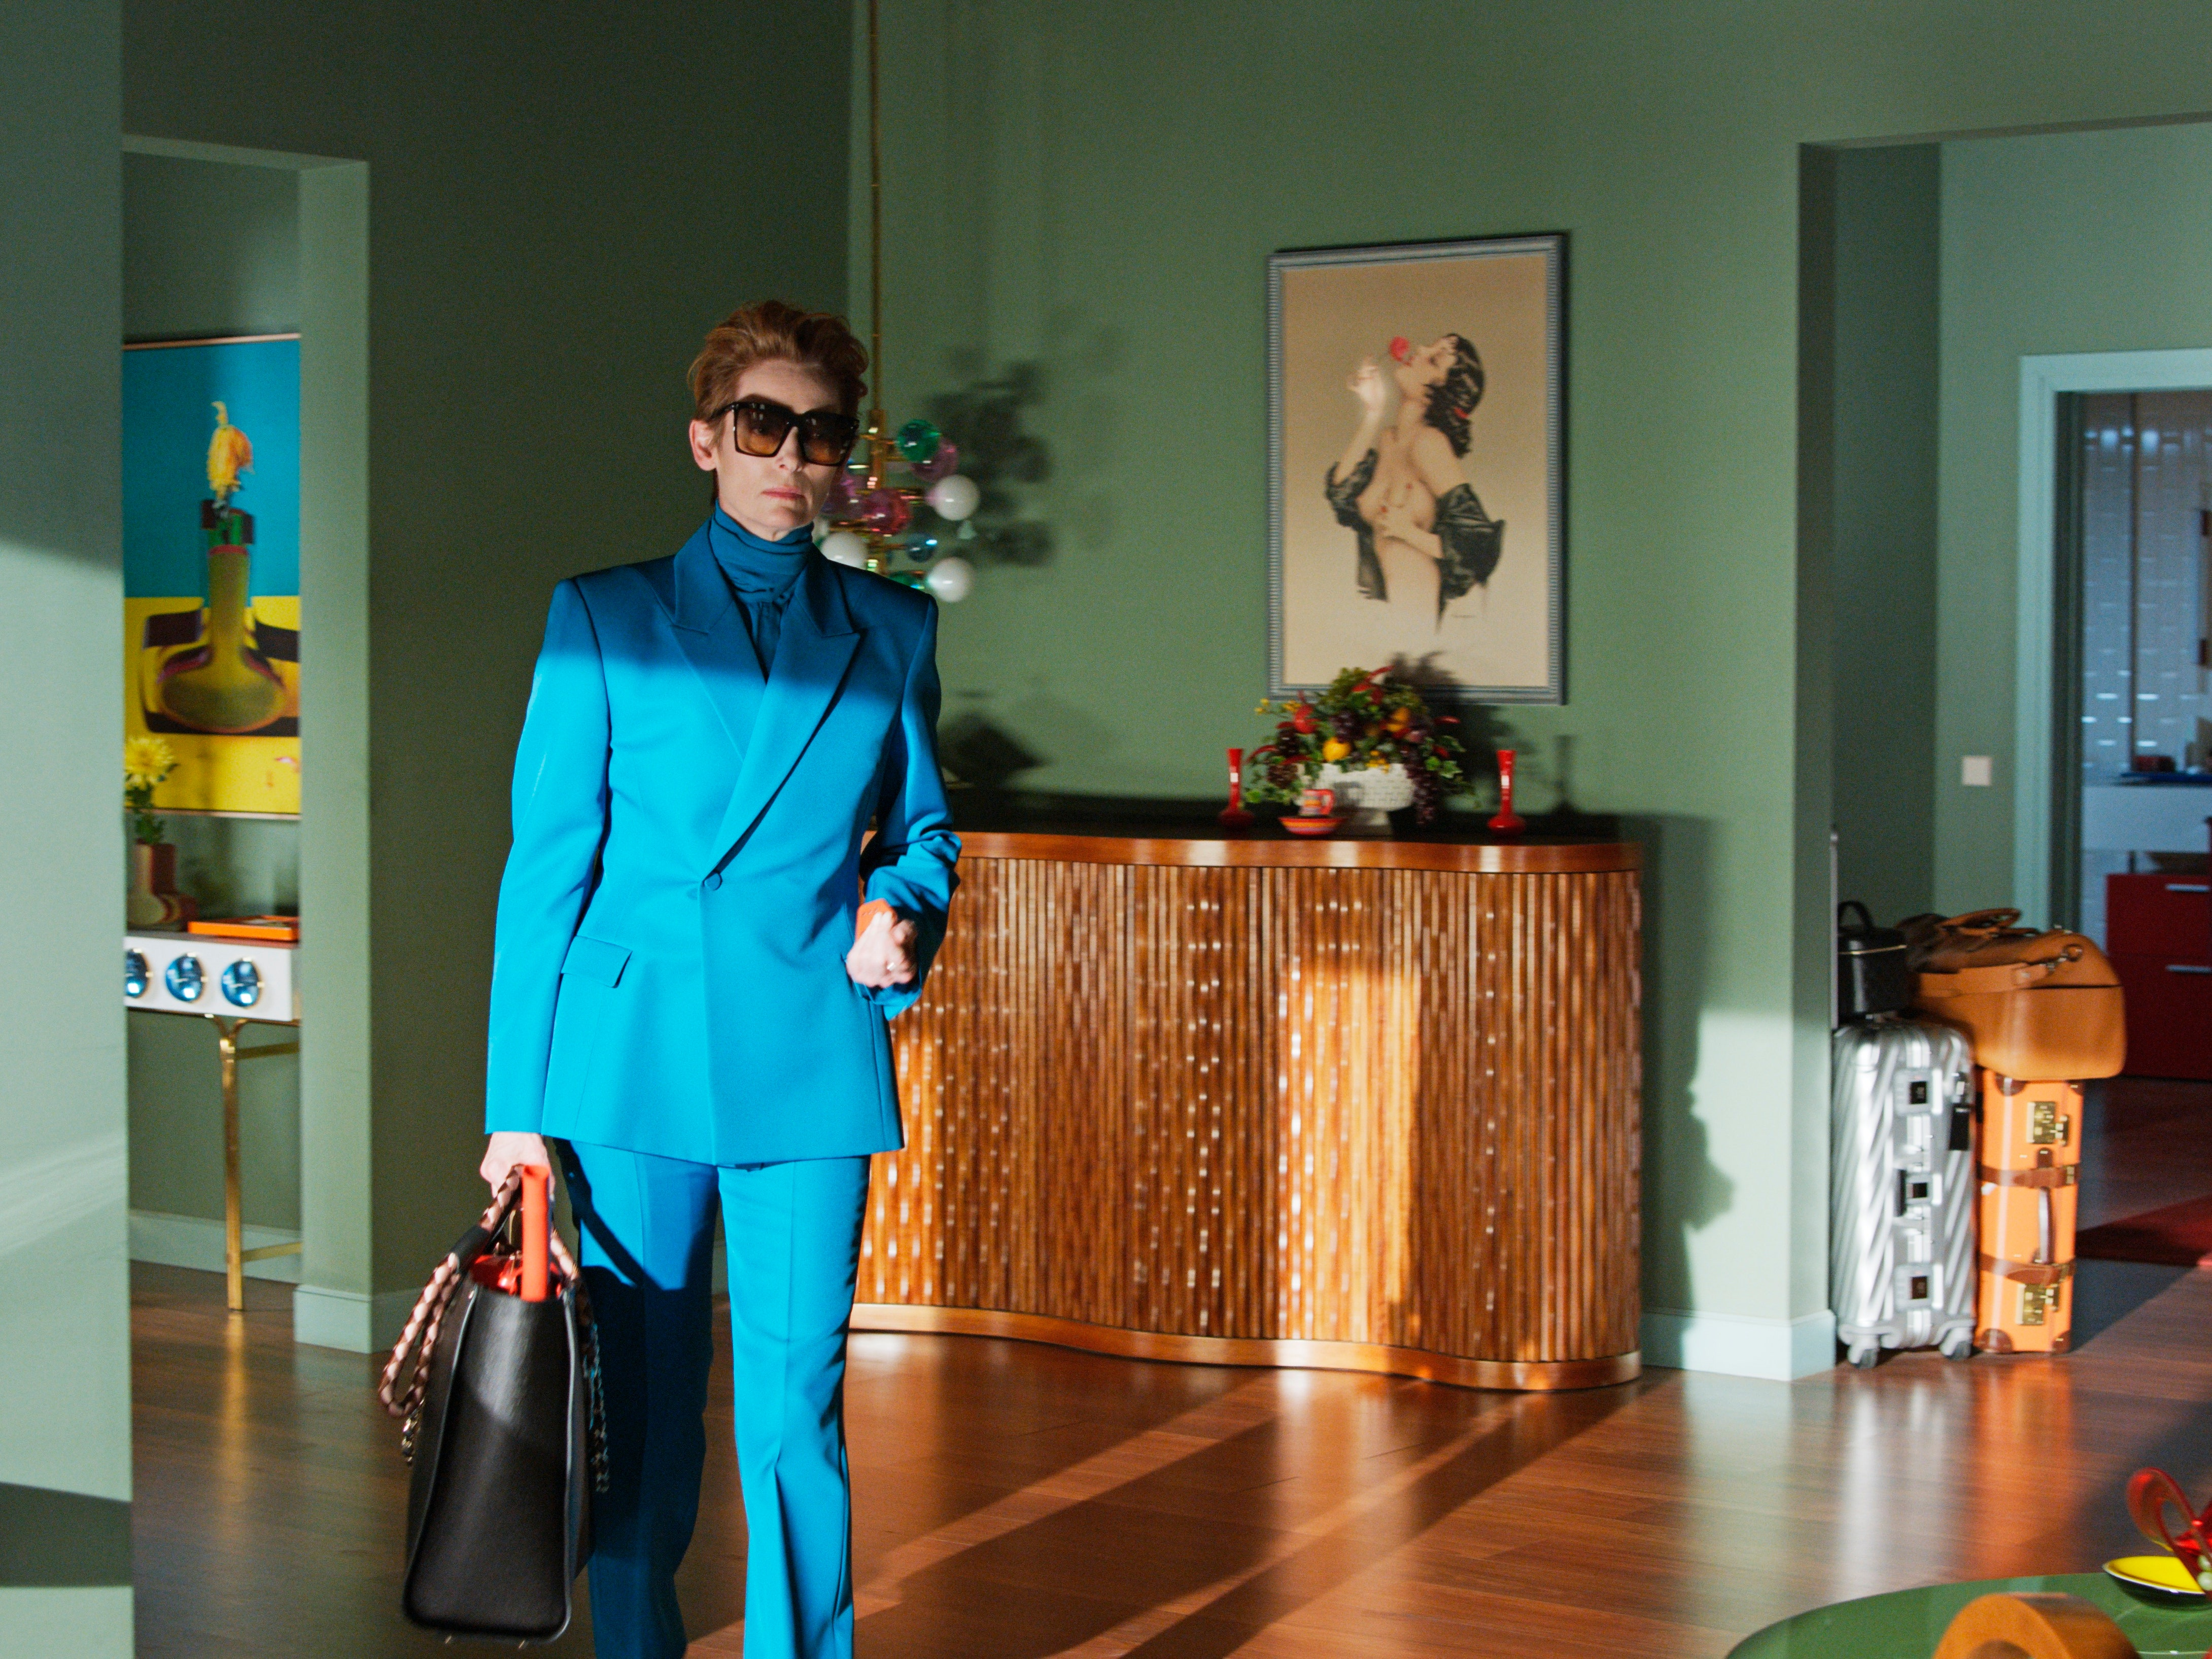 tilda_swinton_as_her_in_the_human_voice_copyright_el_deseo_photo_by_jose_luis_alcaine_courtesy_of_sony_pictures_classics_2.jpg